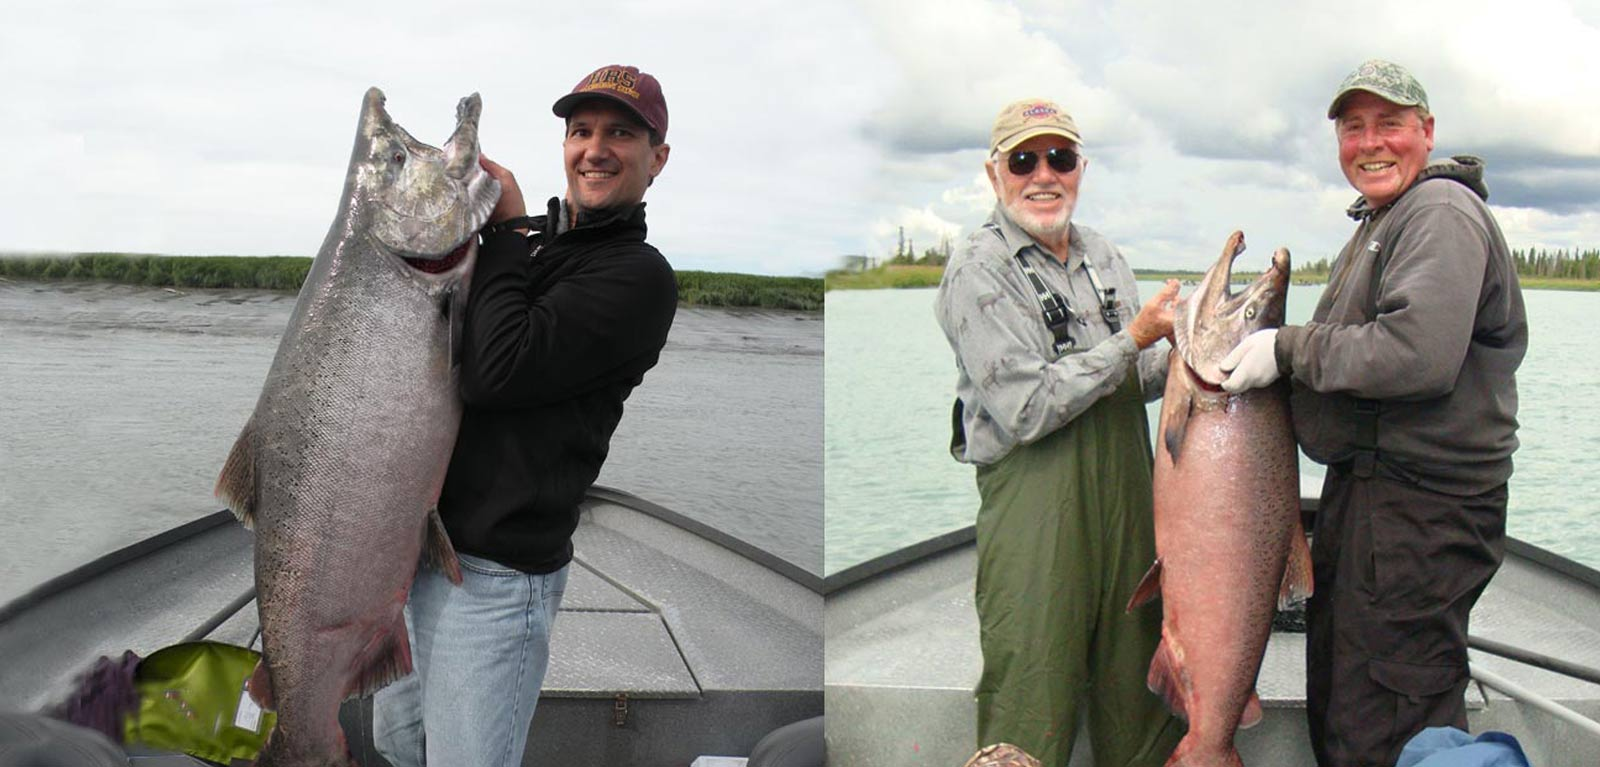 Chuck Thomas Sportfishing